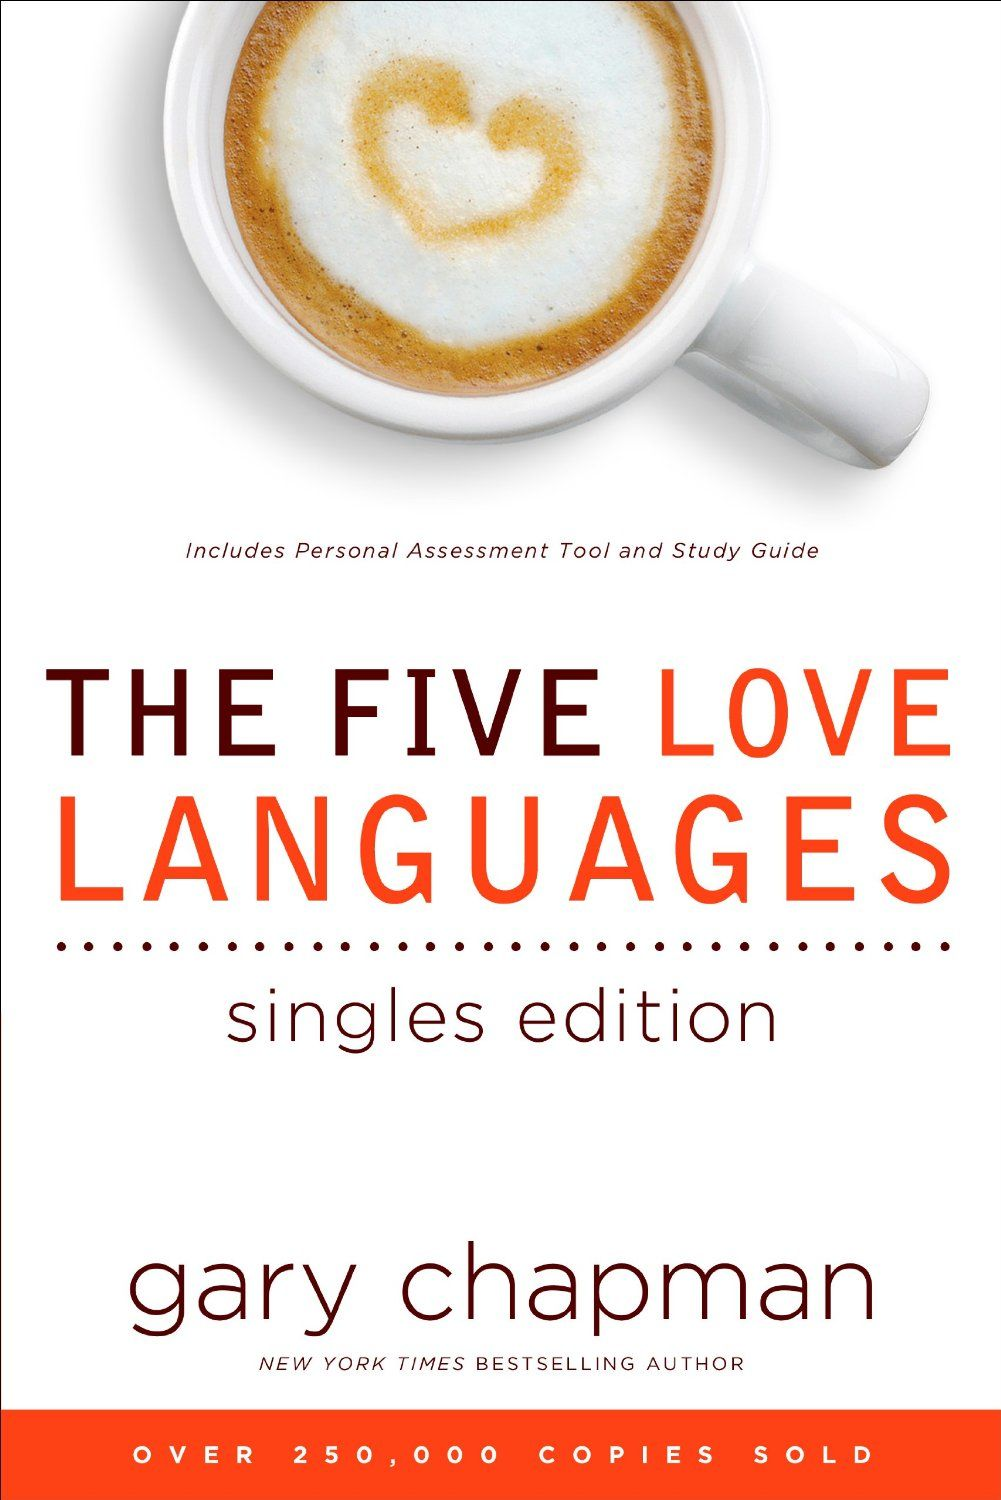 The Five Love Languages Singles Edition  ($9.22) - It really helped us both to not only understand our own Love Language but how to better communicate to each other in our love languages! - The book was easy to read and enjoyable. - Reading this book has really helped enhance my relationships! http://www.amazon.com/exec/obidos/ASIN/B000S1LUE6/electronicfro-20/ASIN/B000S1LUE6